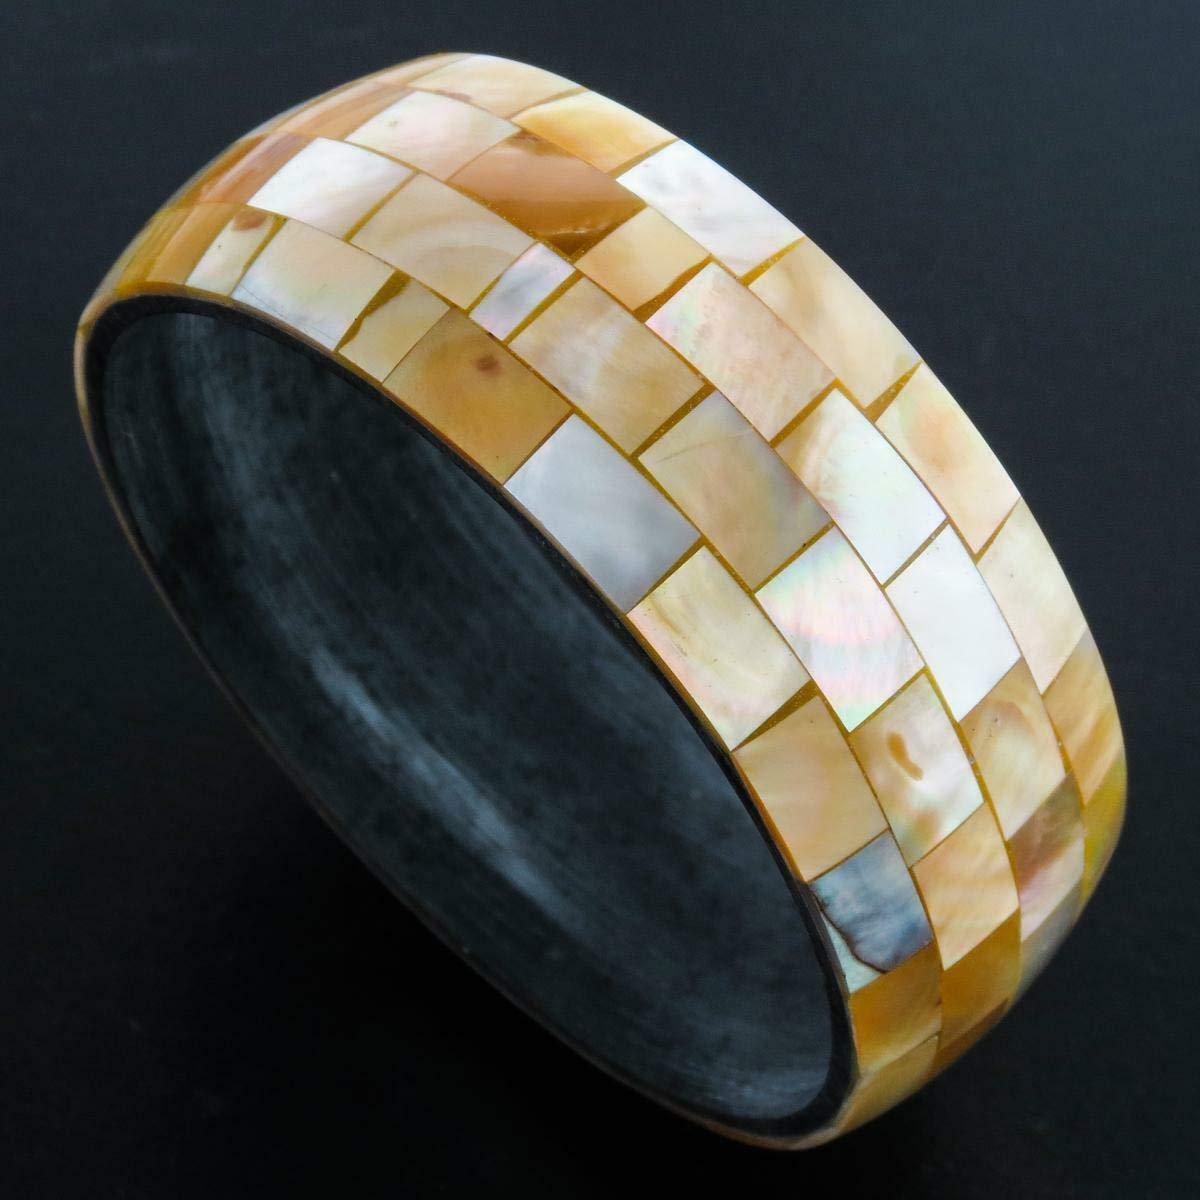 8 Iridescent Wide Gold Oyster Mother of Pearl Mosaic Bangle Bracelet YE-2744 Sale